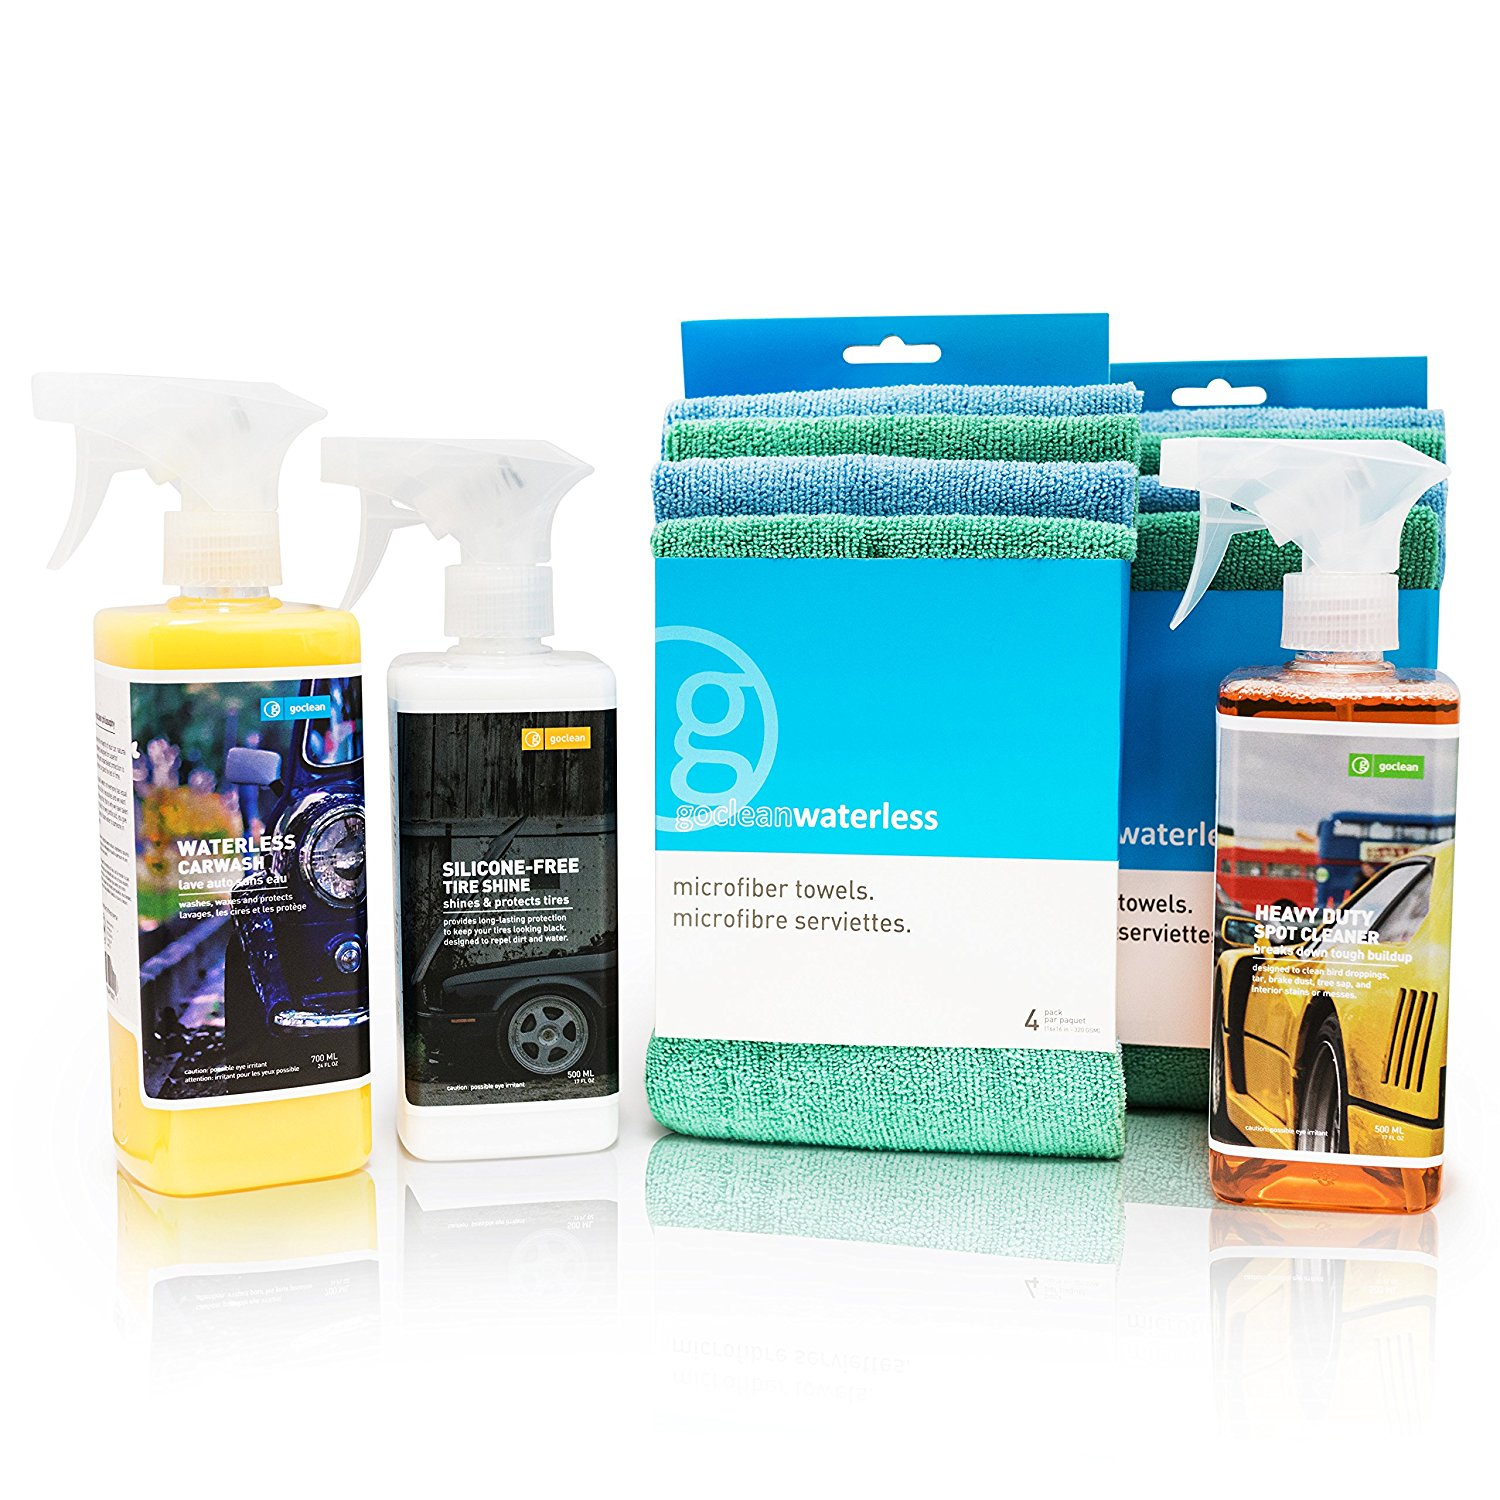 GoClean 5pc WATERLESS CAR WASH COMBO KIT - Waterless Car Wash Spray, Heavy Duty Spot Cleaner, Tire Shine Solution & 8 Microfiber Drying Towels - No Water Natural Exterior Auto Cleaning Gift Set